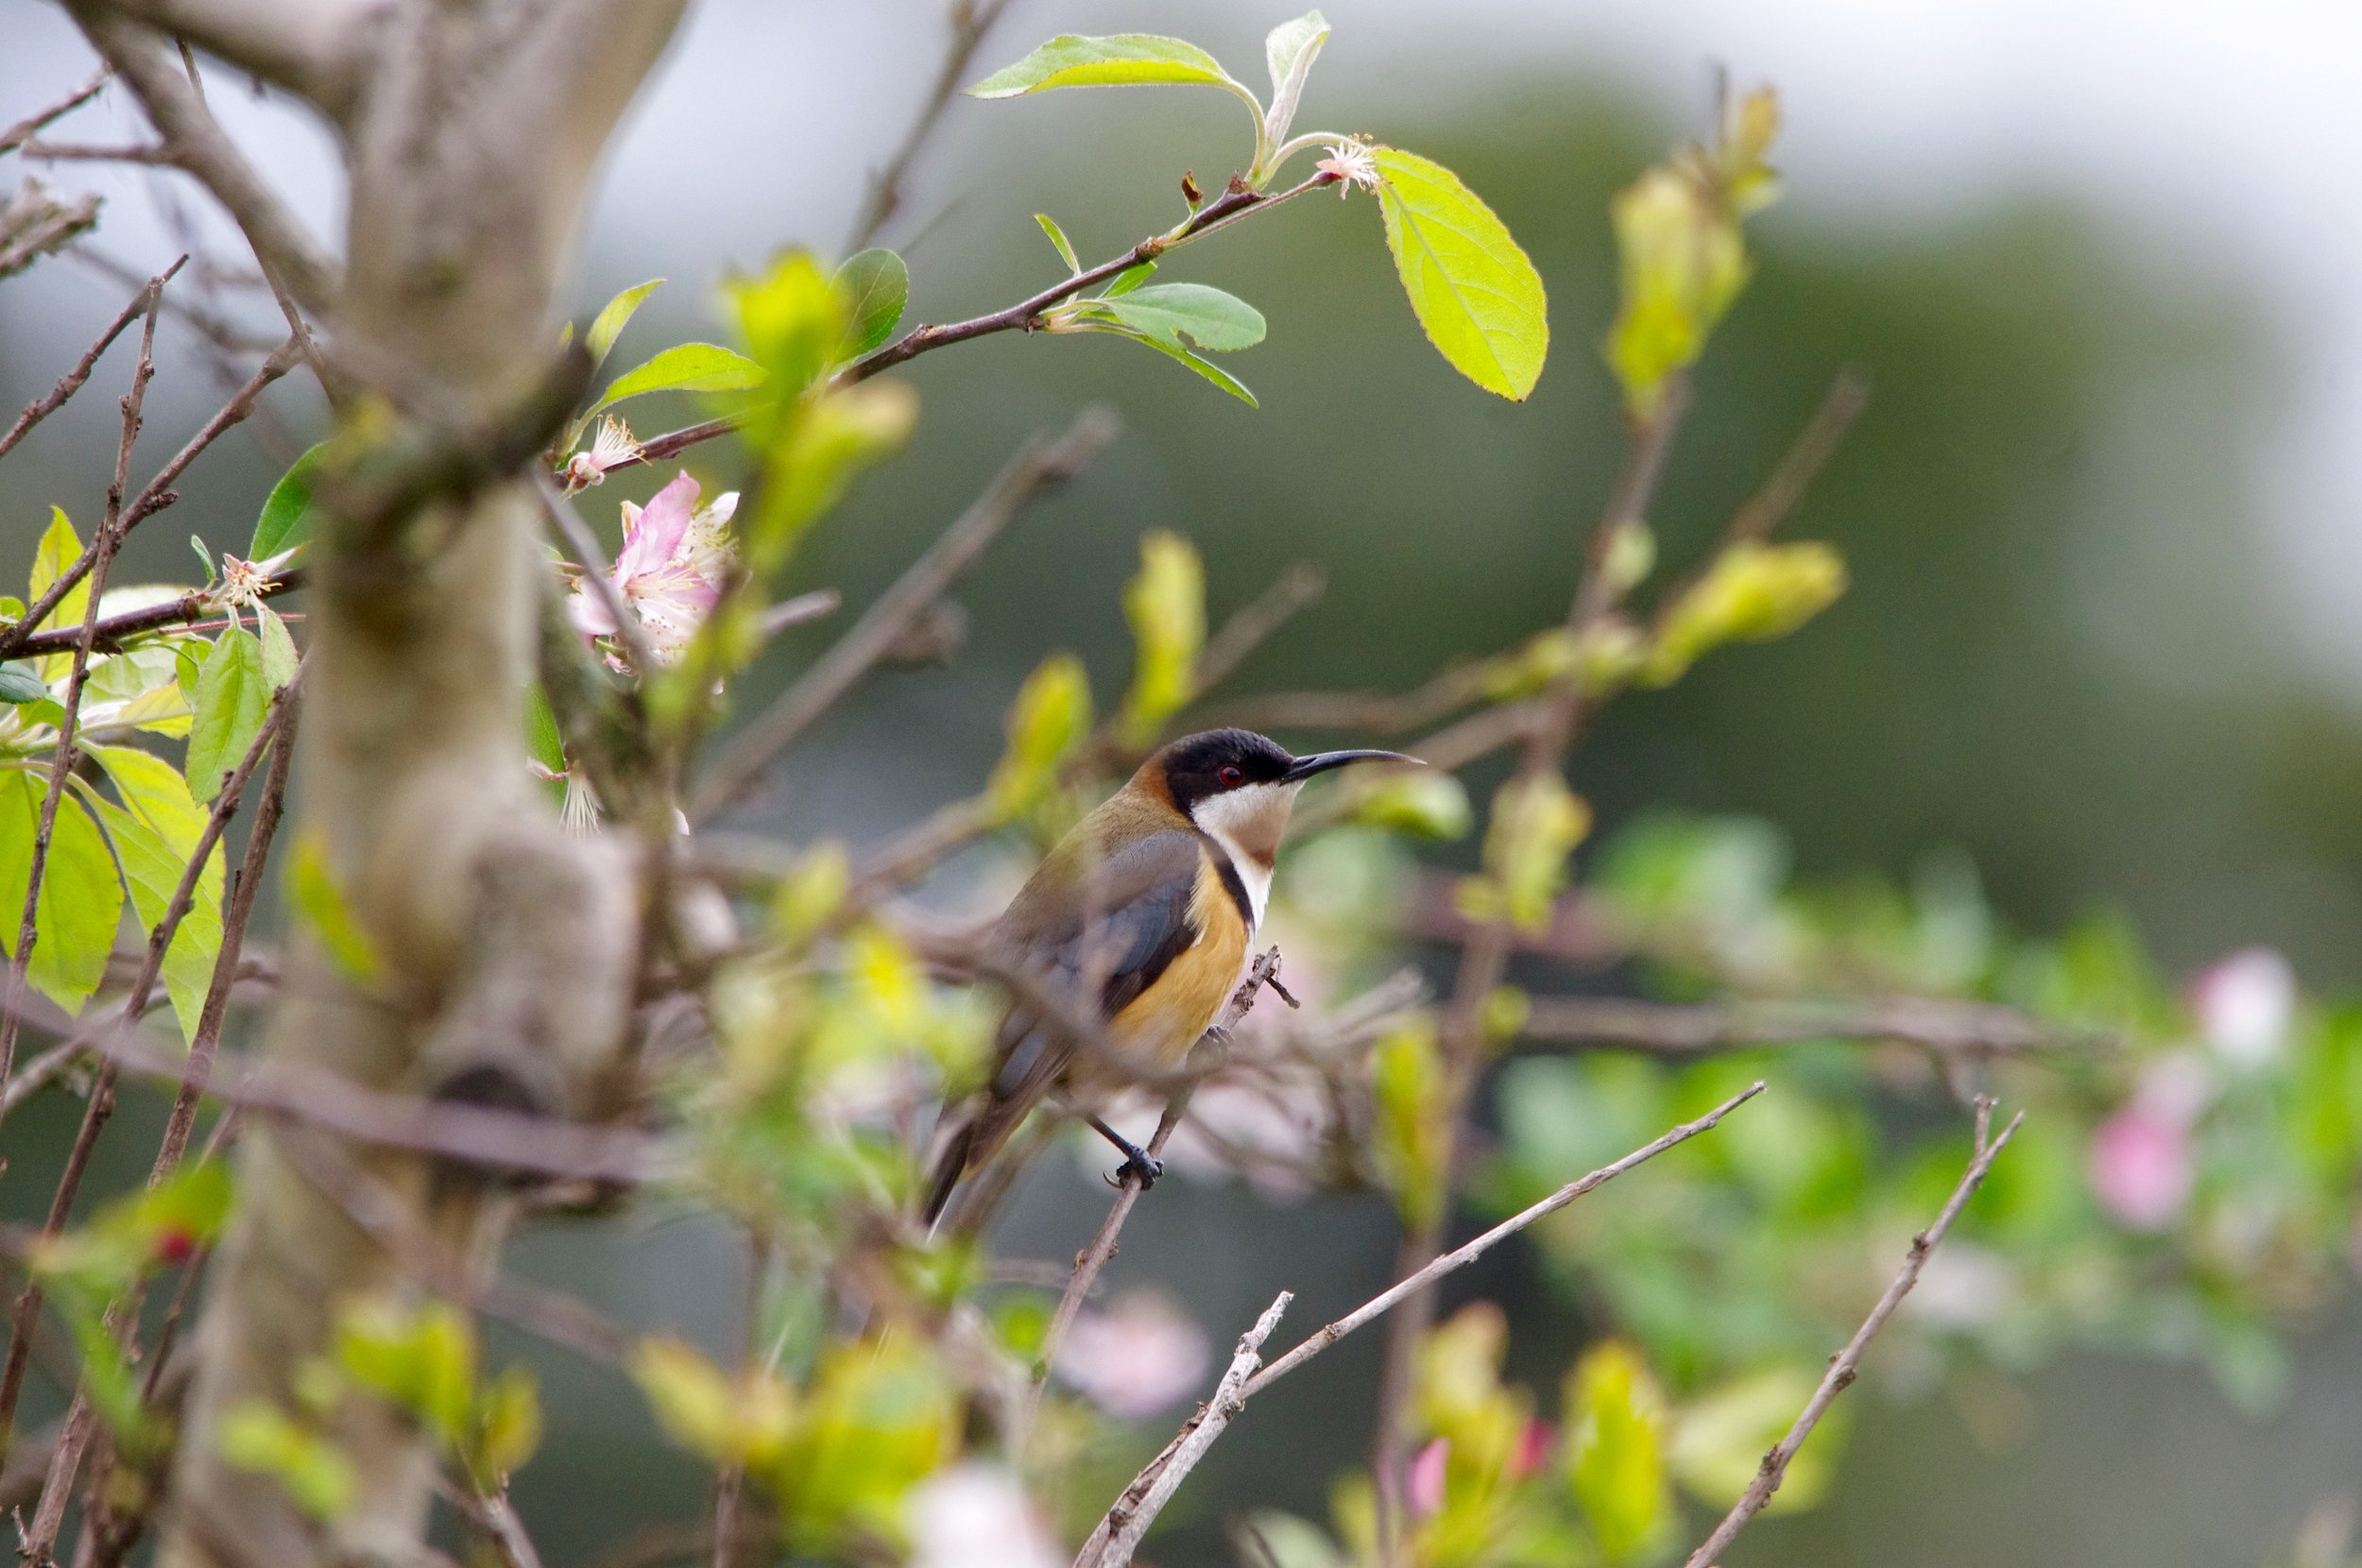 Spring visits from eastern spinebills have brought joy to my family for years, but their presence at our place has recently become permanent. Last year we had chicks raised in the garden. Will they succeed this year?